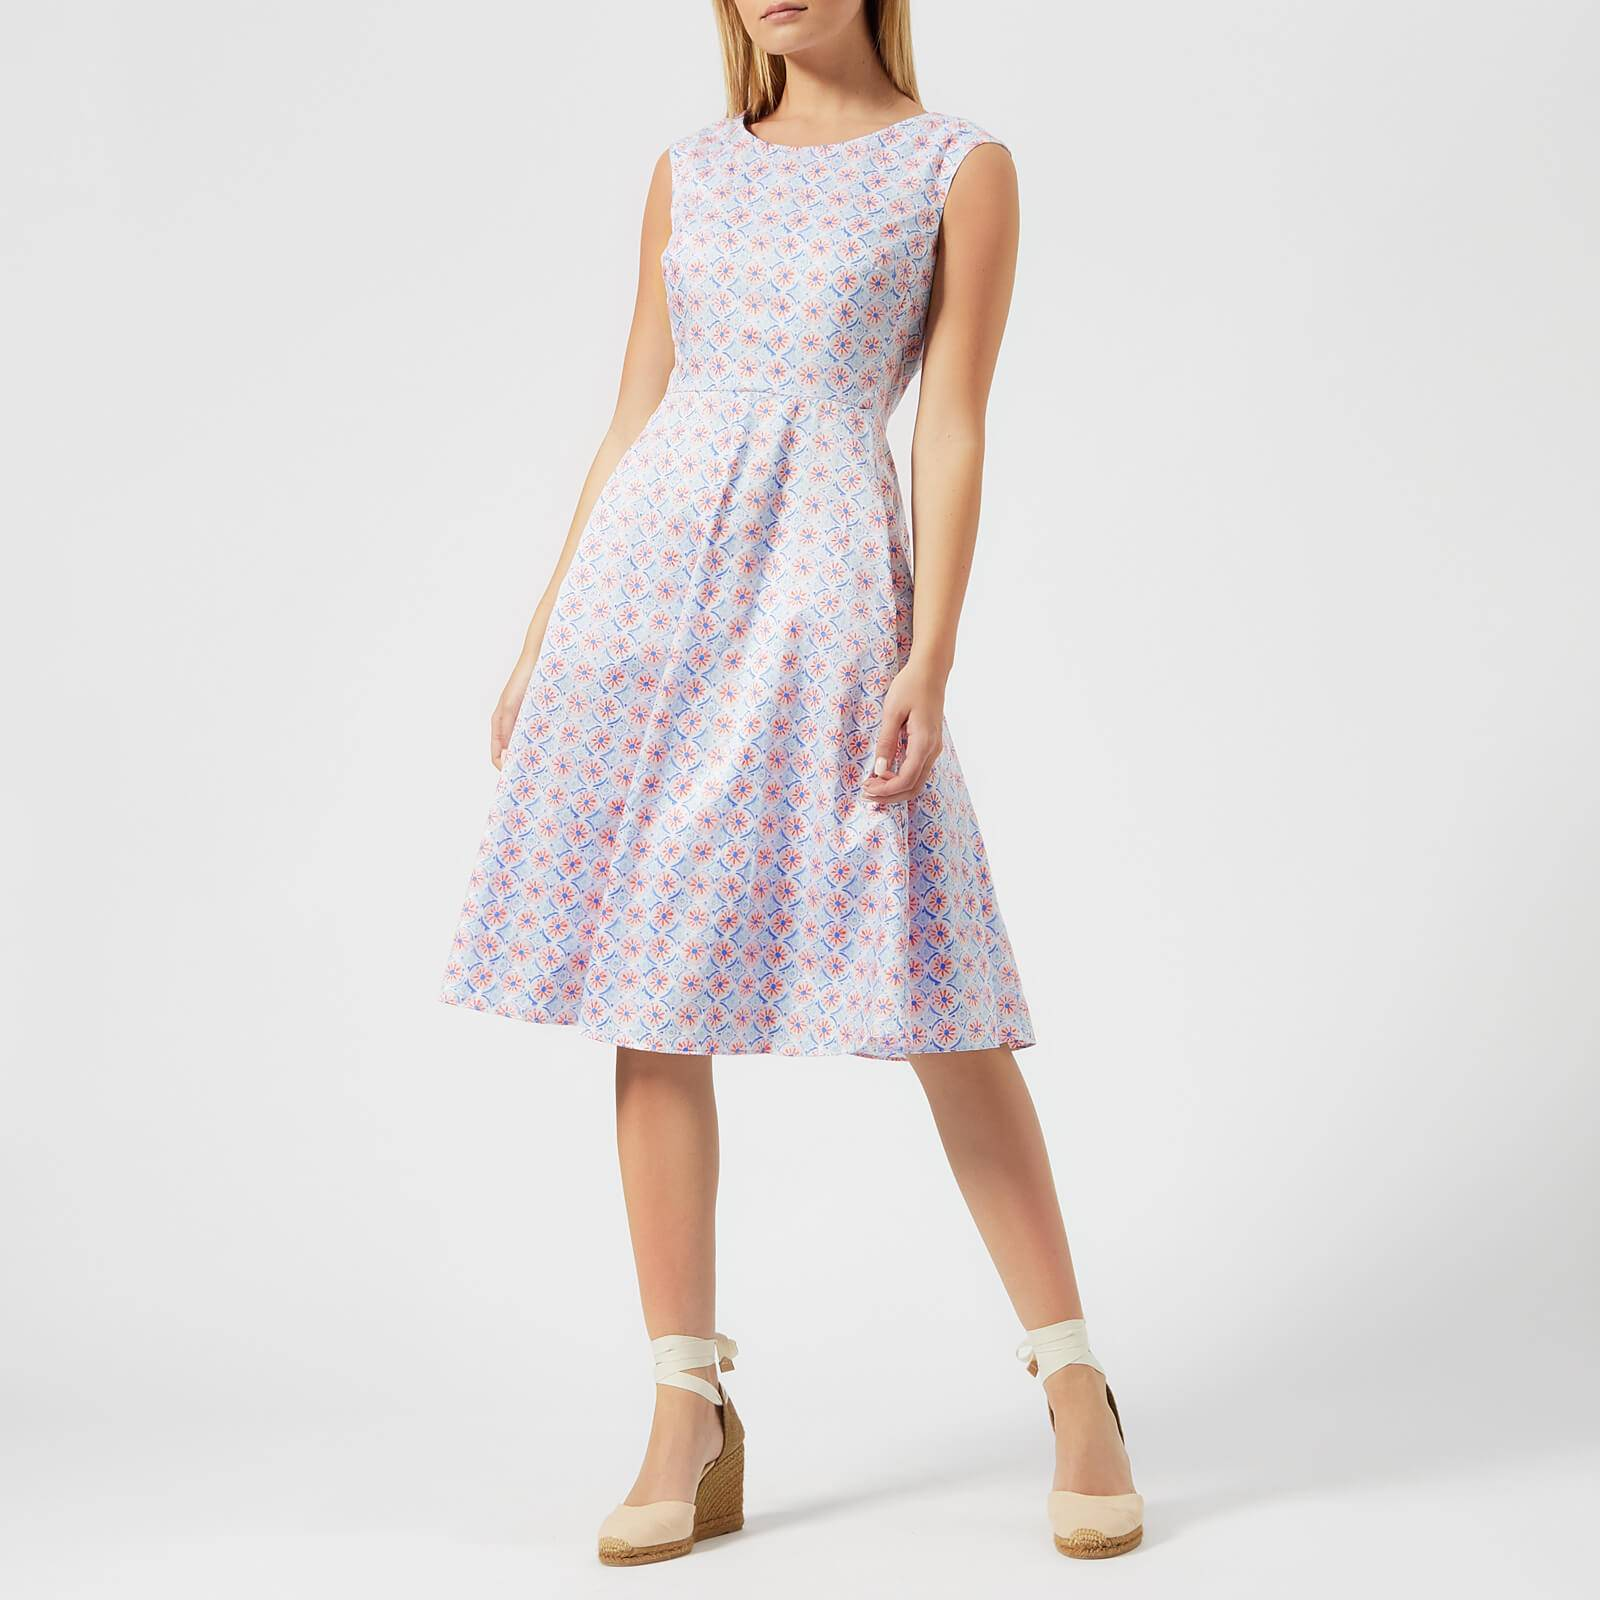 Joules Women's Amelie Fit and Flare Dress - White Summer Mosaic - UK 14 - White